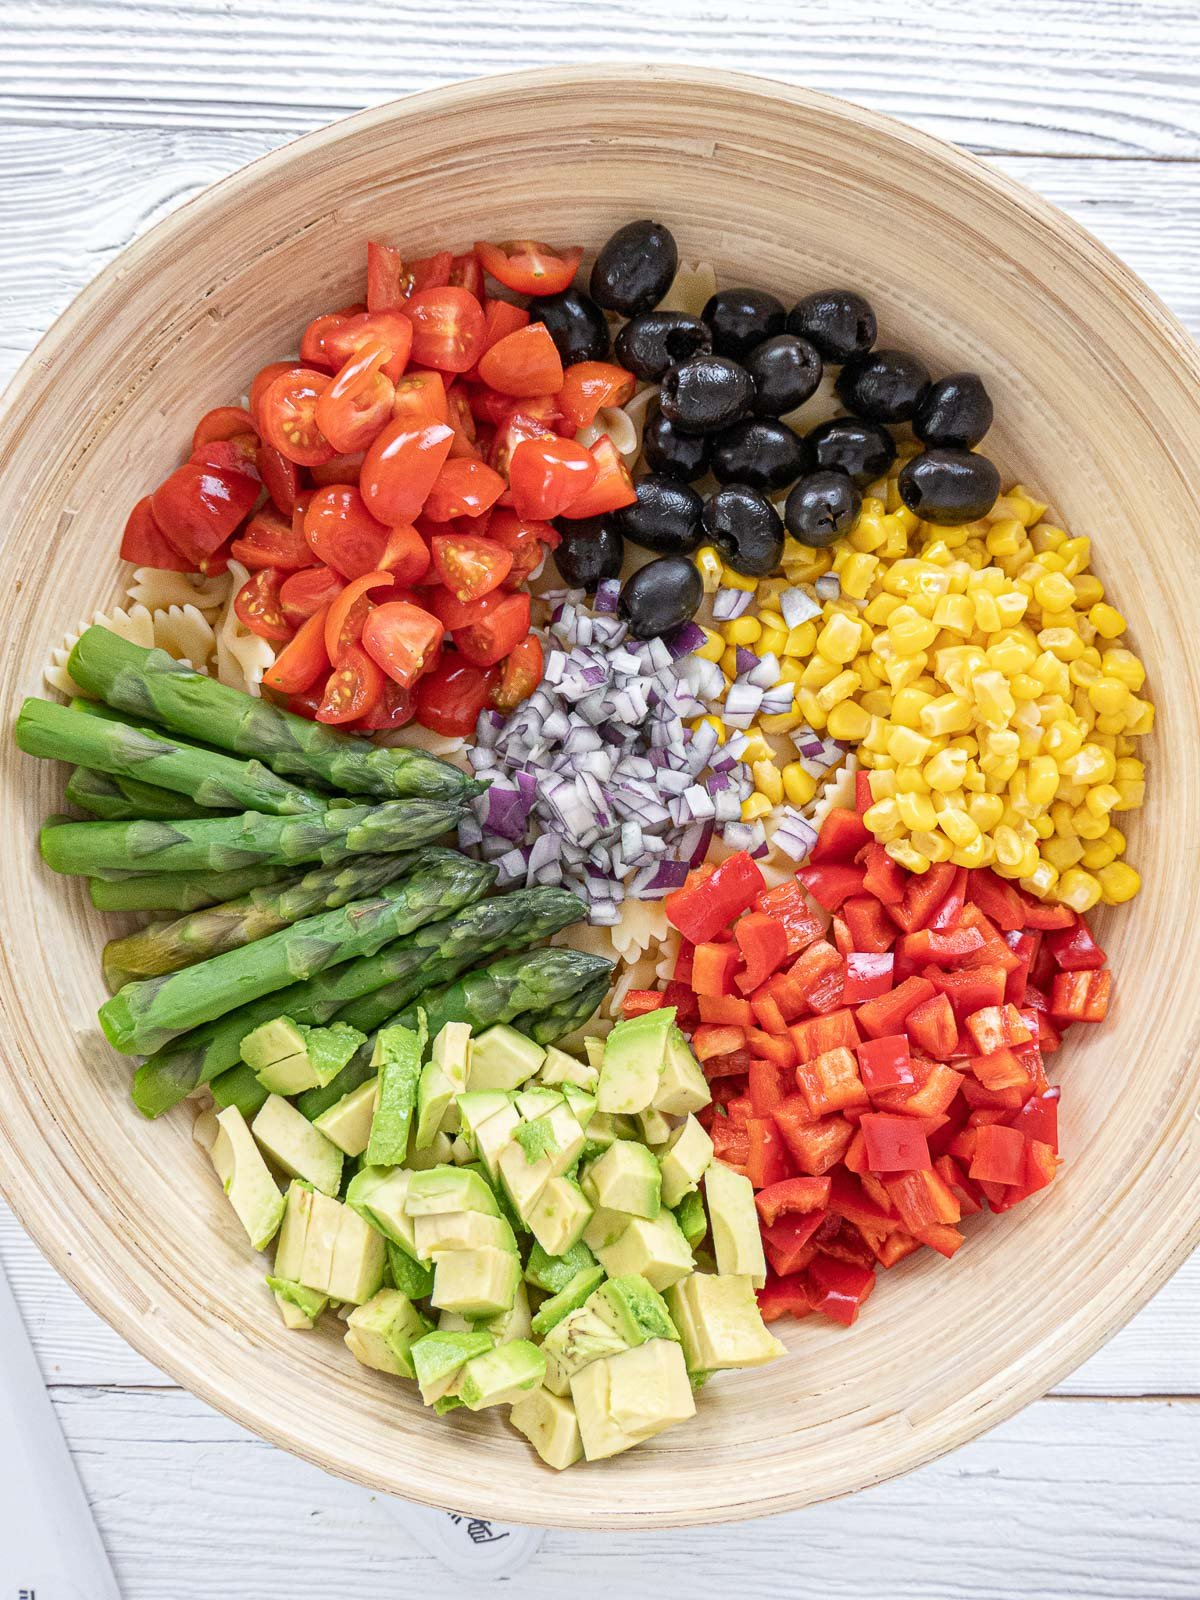 ingredients for pasta salad in a bowl